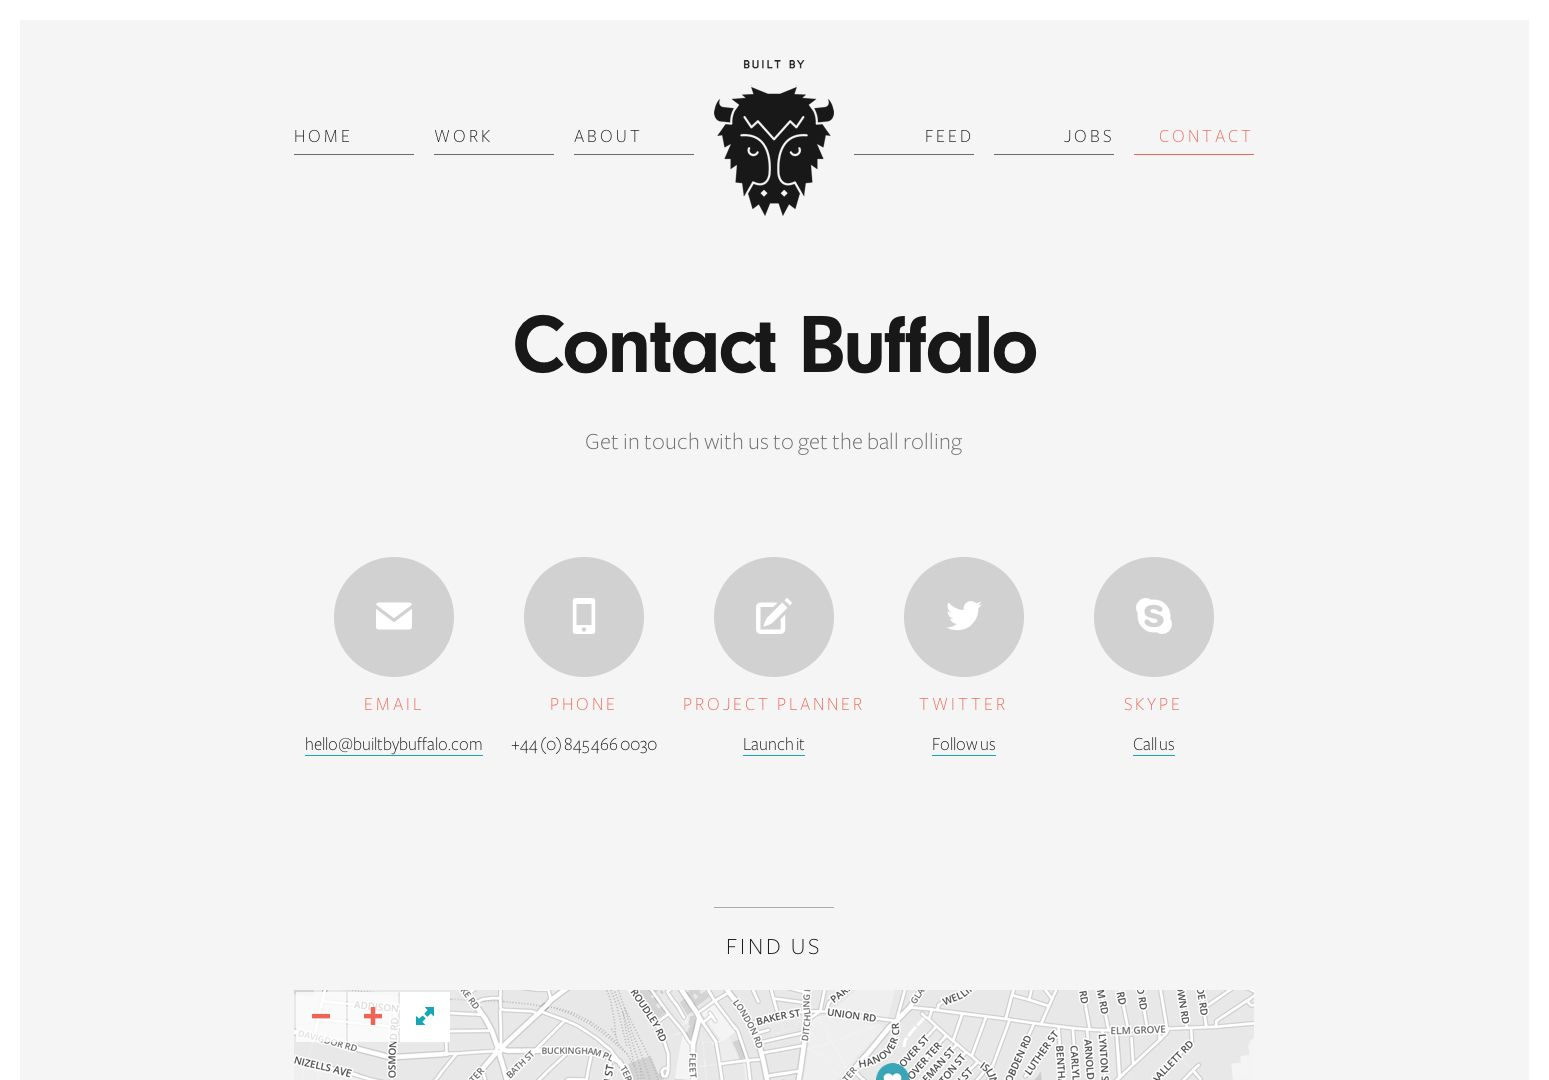 Really Love WwwBuiltbybuffaloCom Website Especially The Contact